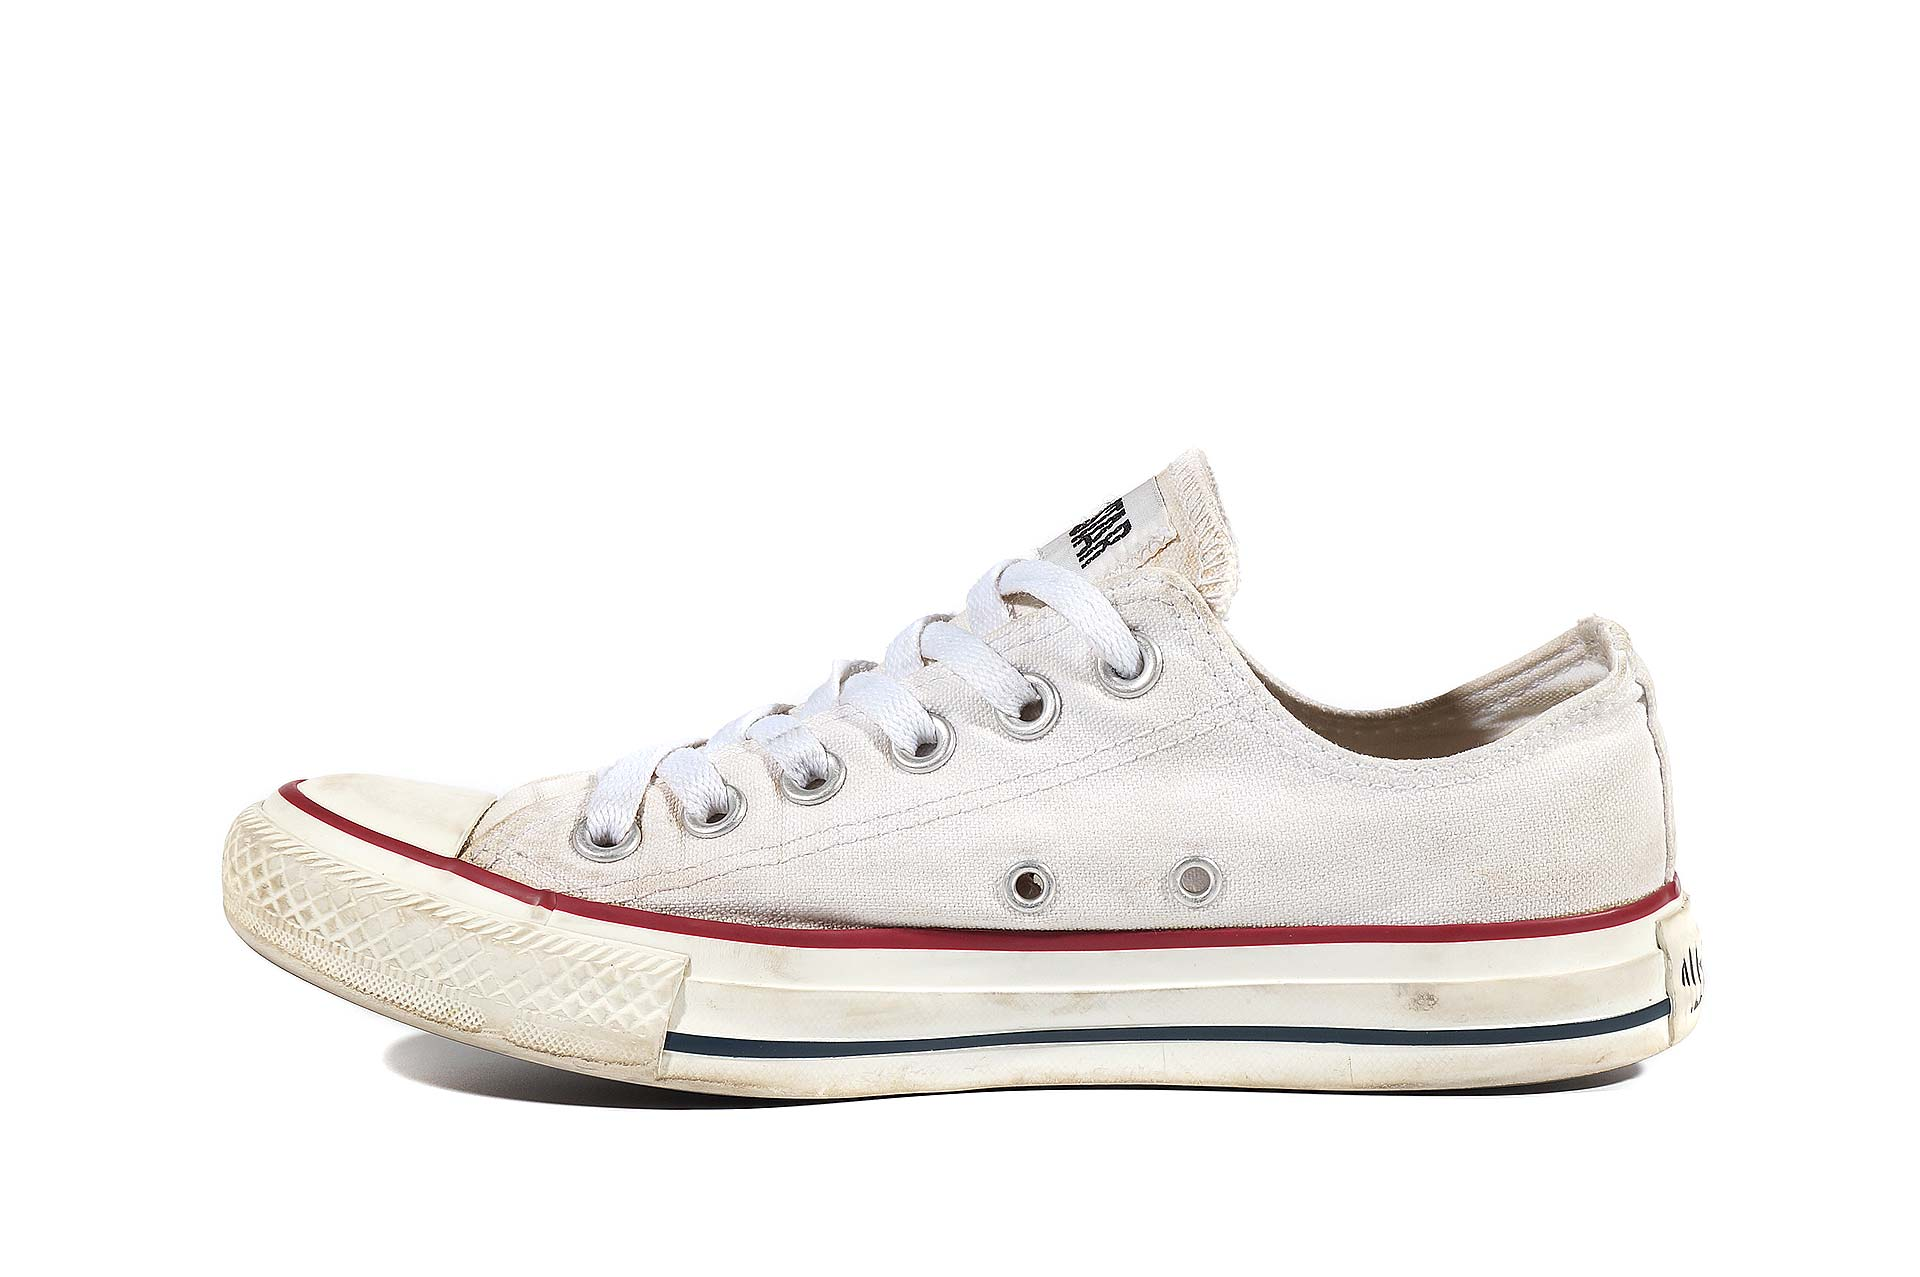 5bda35dfe71 Converse Chuck Taylor All Star M7652 (00047-U) sneakers used buy online  shop vintageshoes.ru